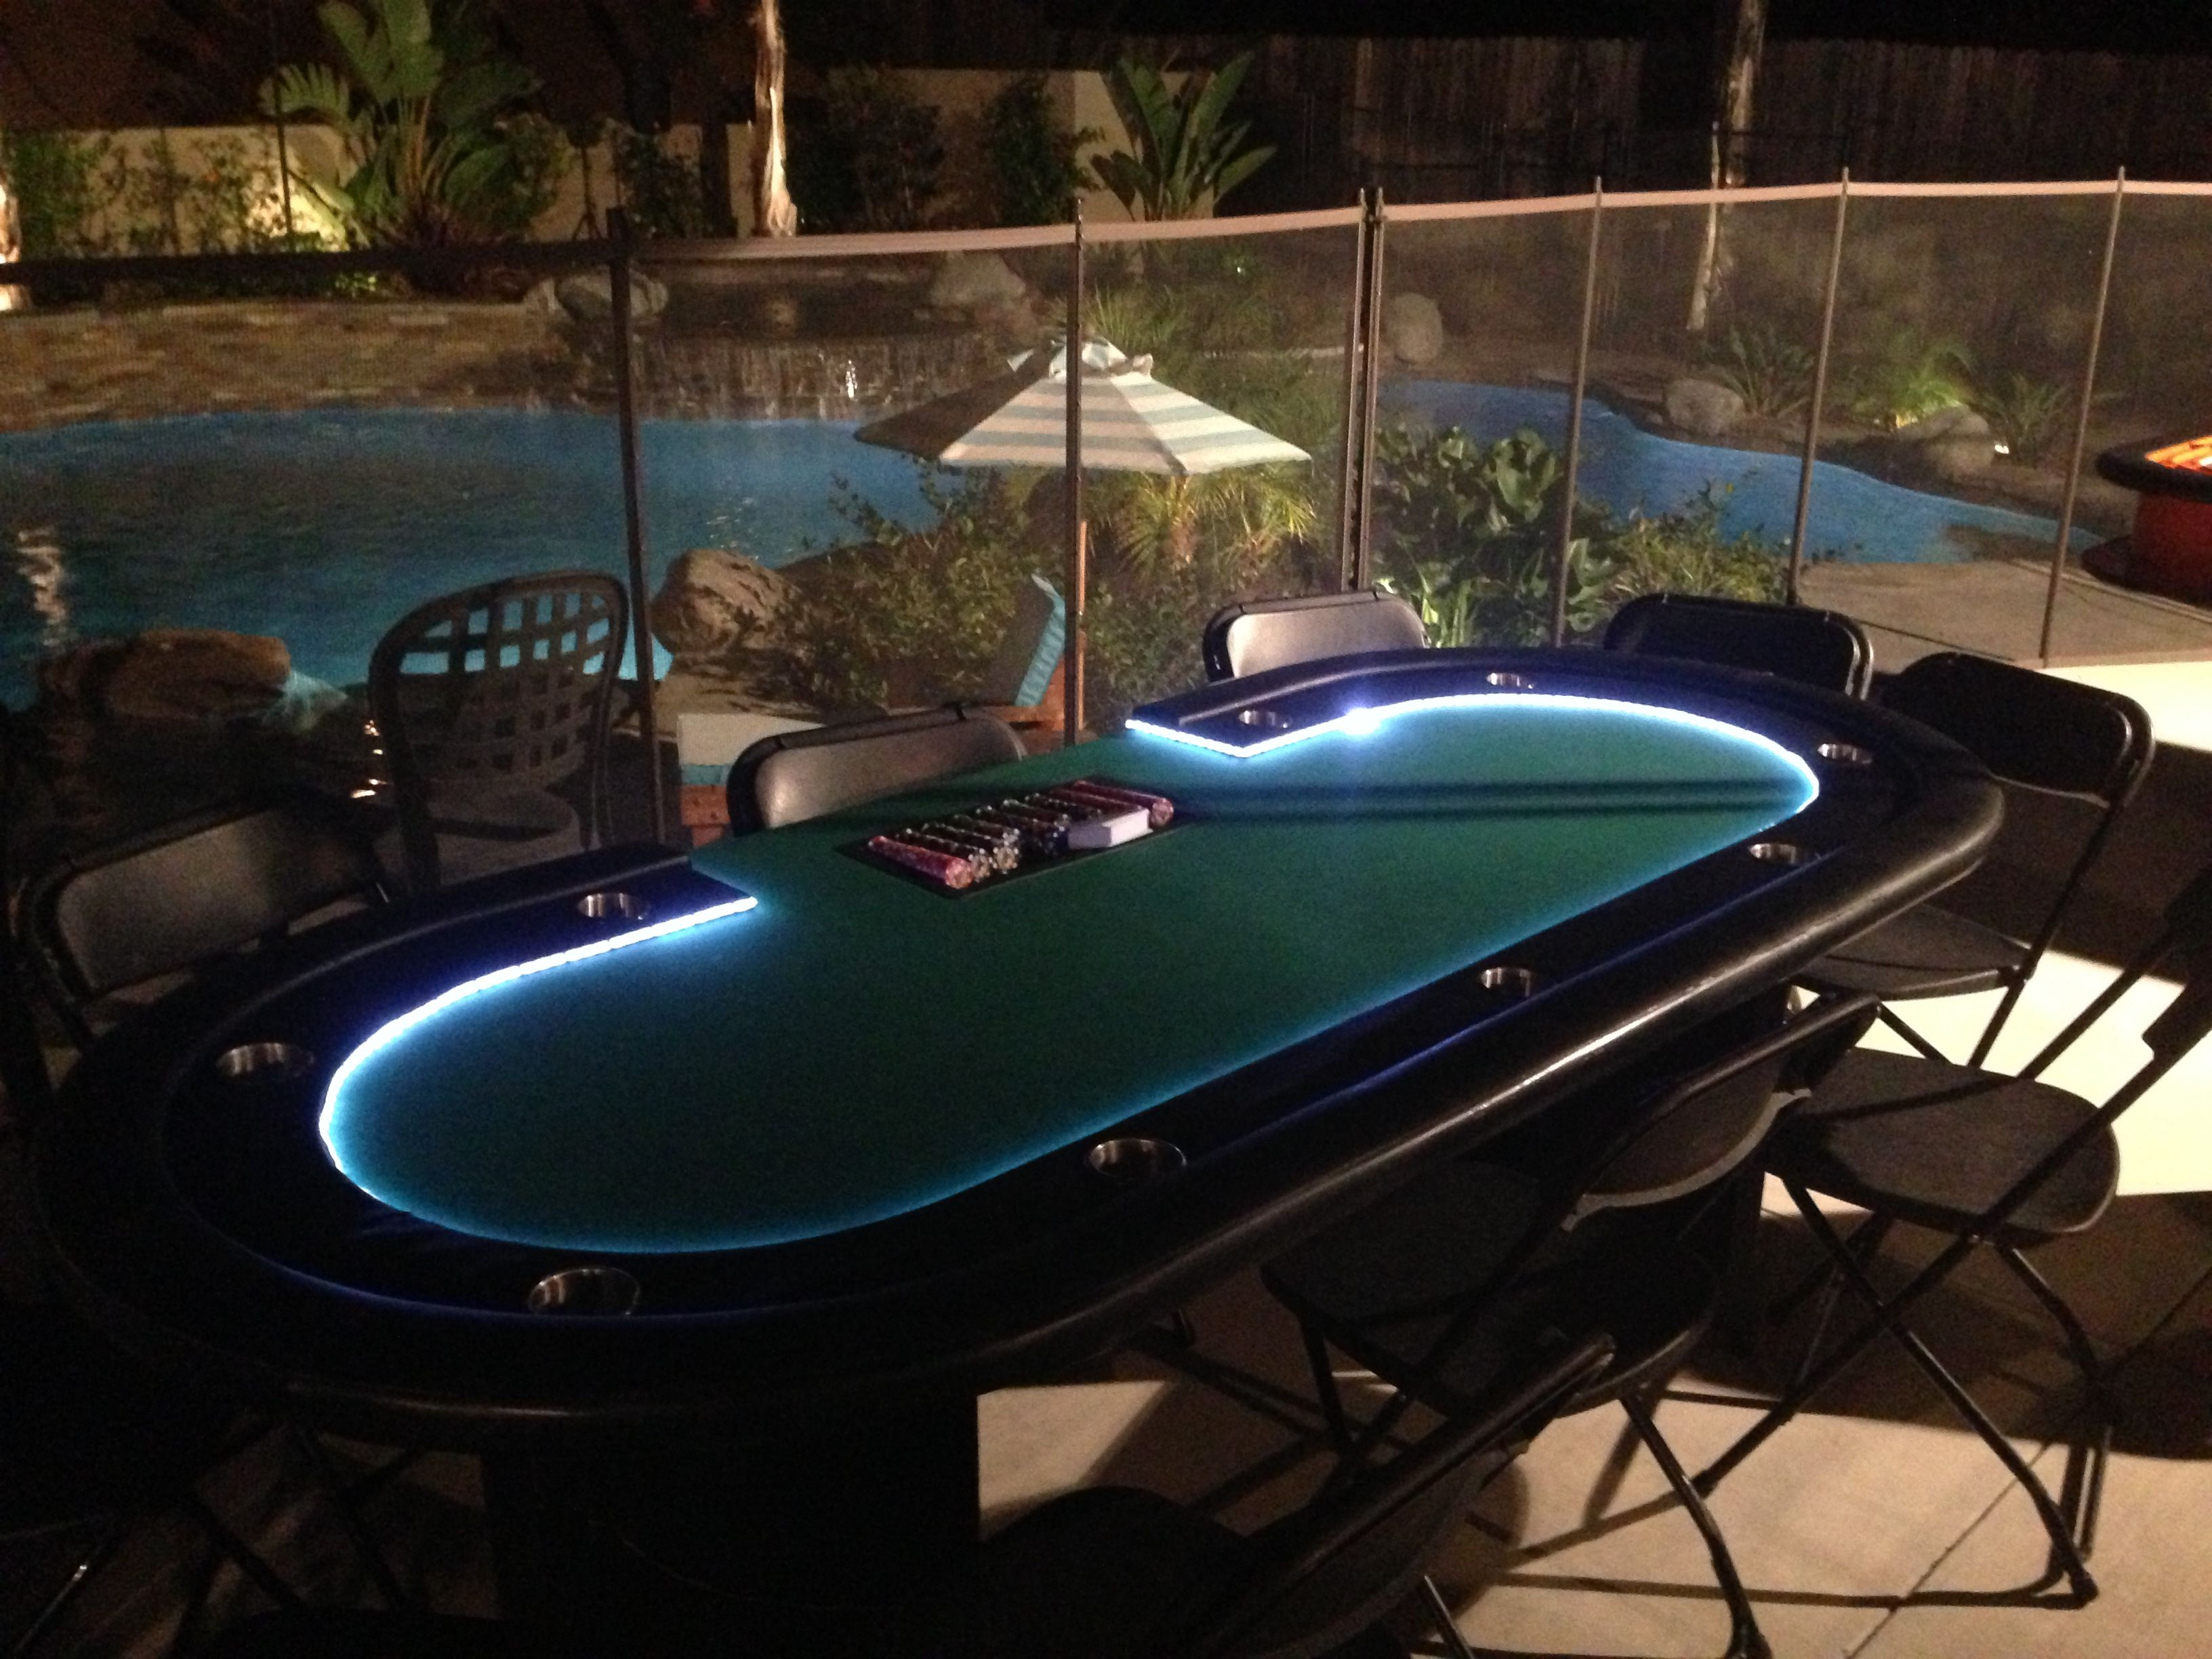 Deluxe LED Gaming Table Overlooking Beautiful Backyard And Pool Lights Light Up The Game